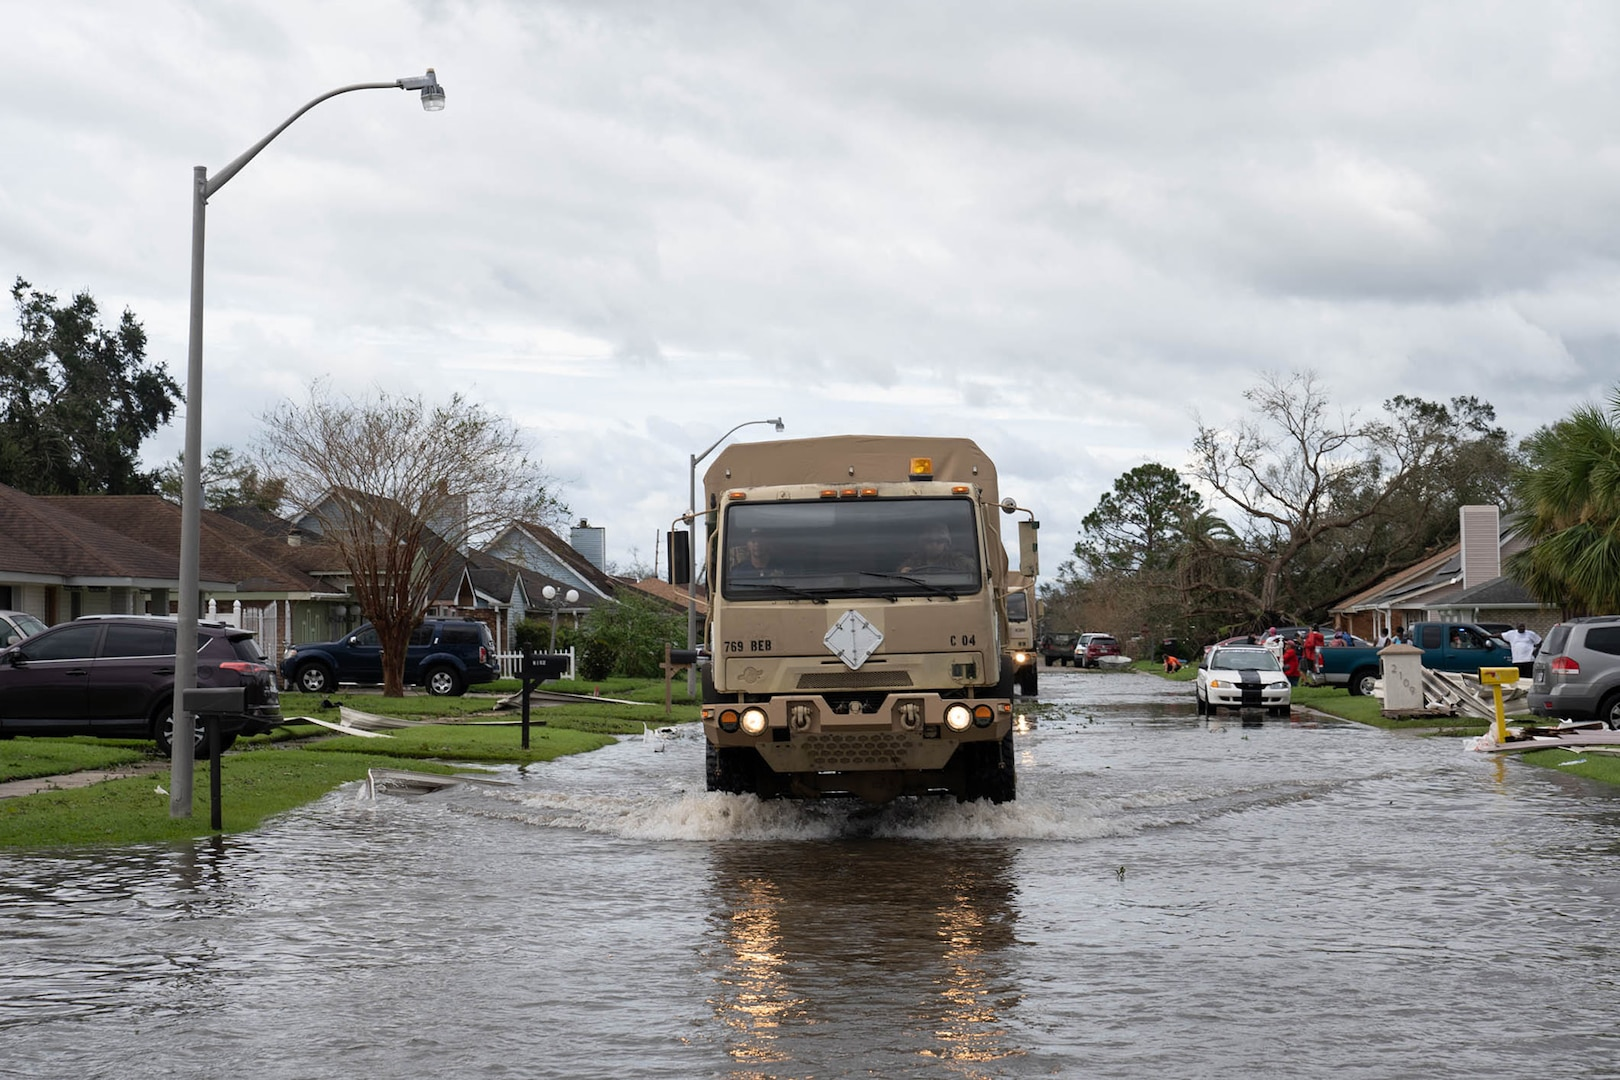 Louisiana National Guard members in high-water vehicles and boats work with St. John the Baptist Parish officials to rescue people stranded in their homes in the wake of Hurricane Ida.